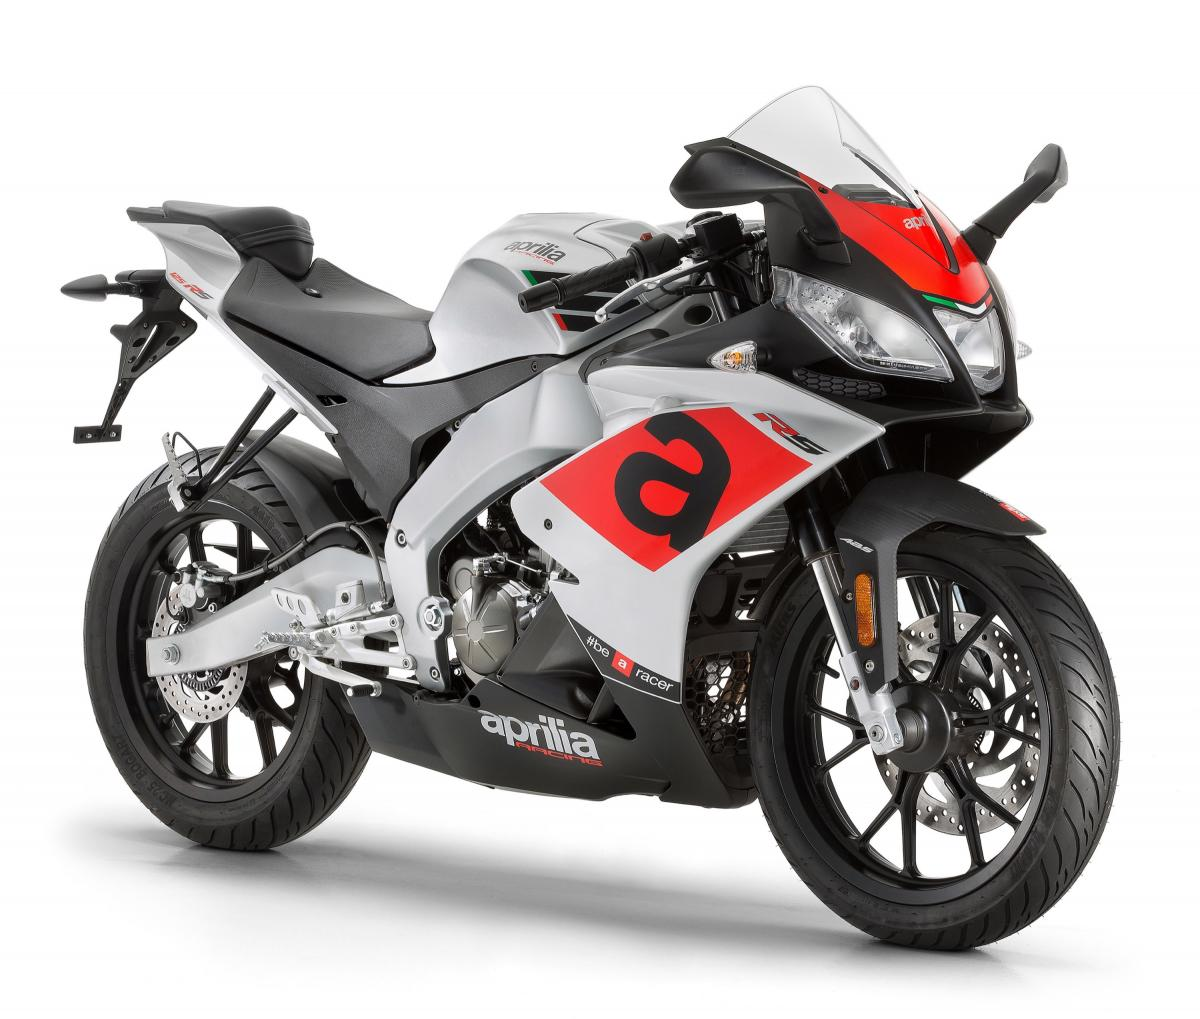 Aprilia unveils revamped RS 125